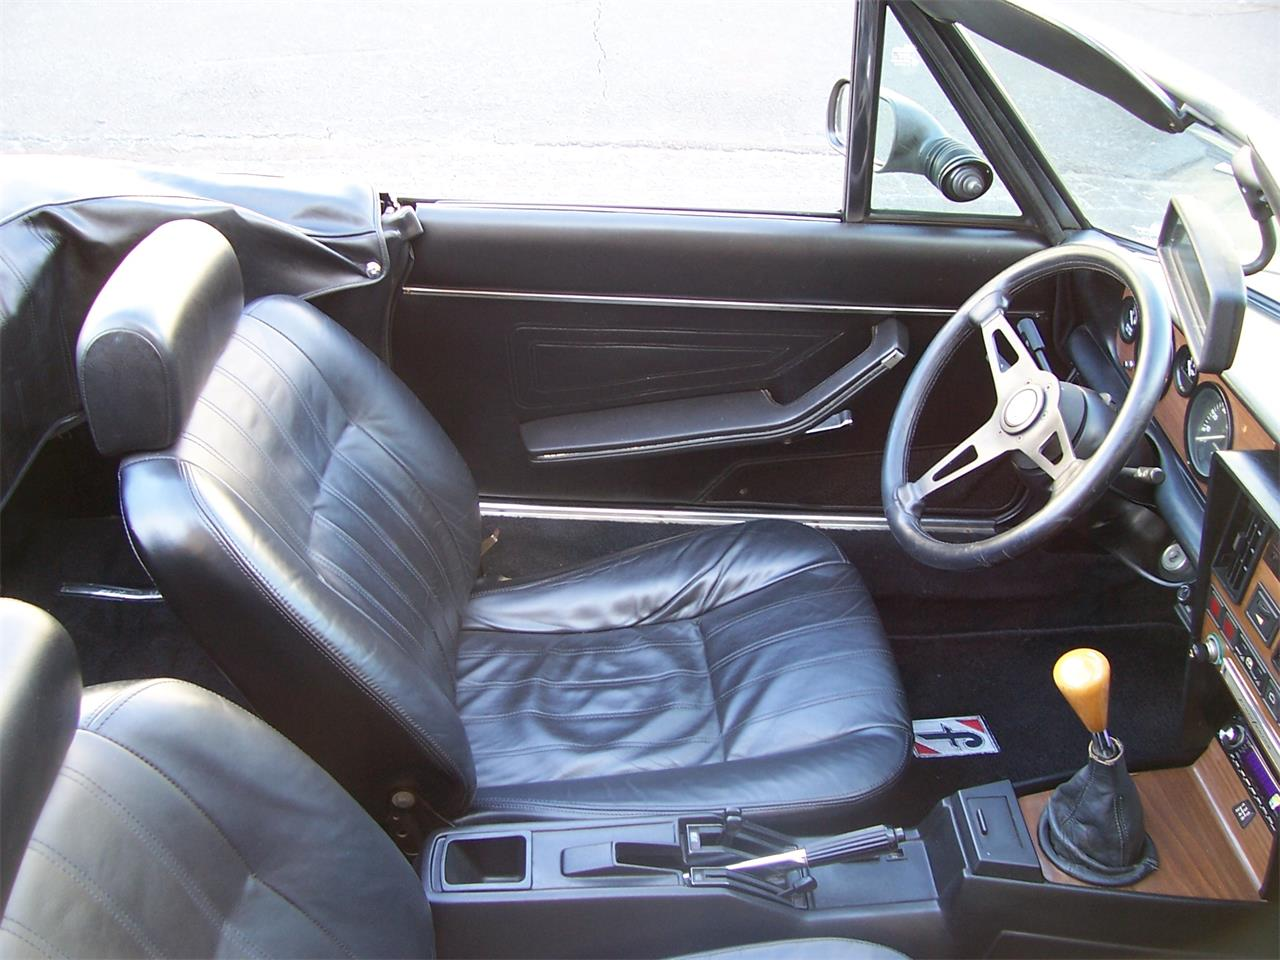 Large Picture of 1985 Fiat Spider located in Alpharetta Georgia - $14,900.00 - MH5P